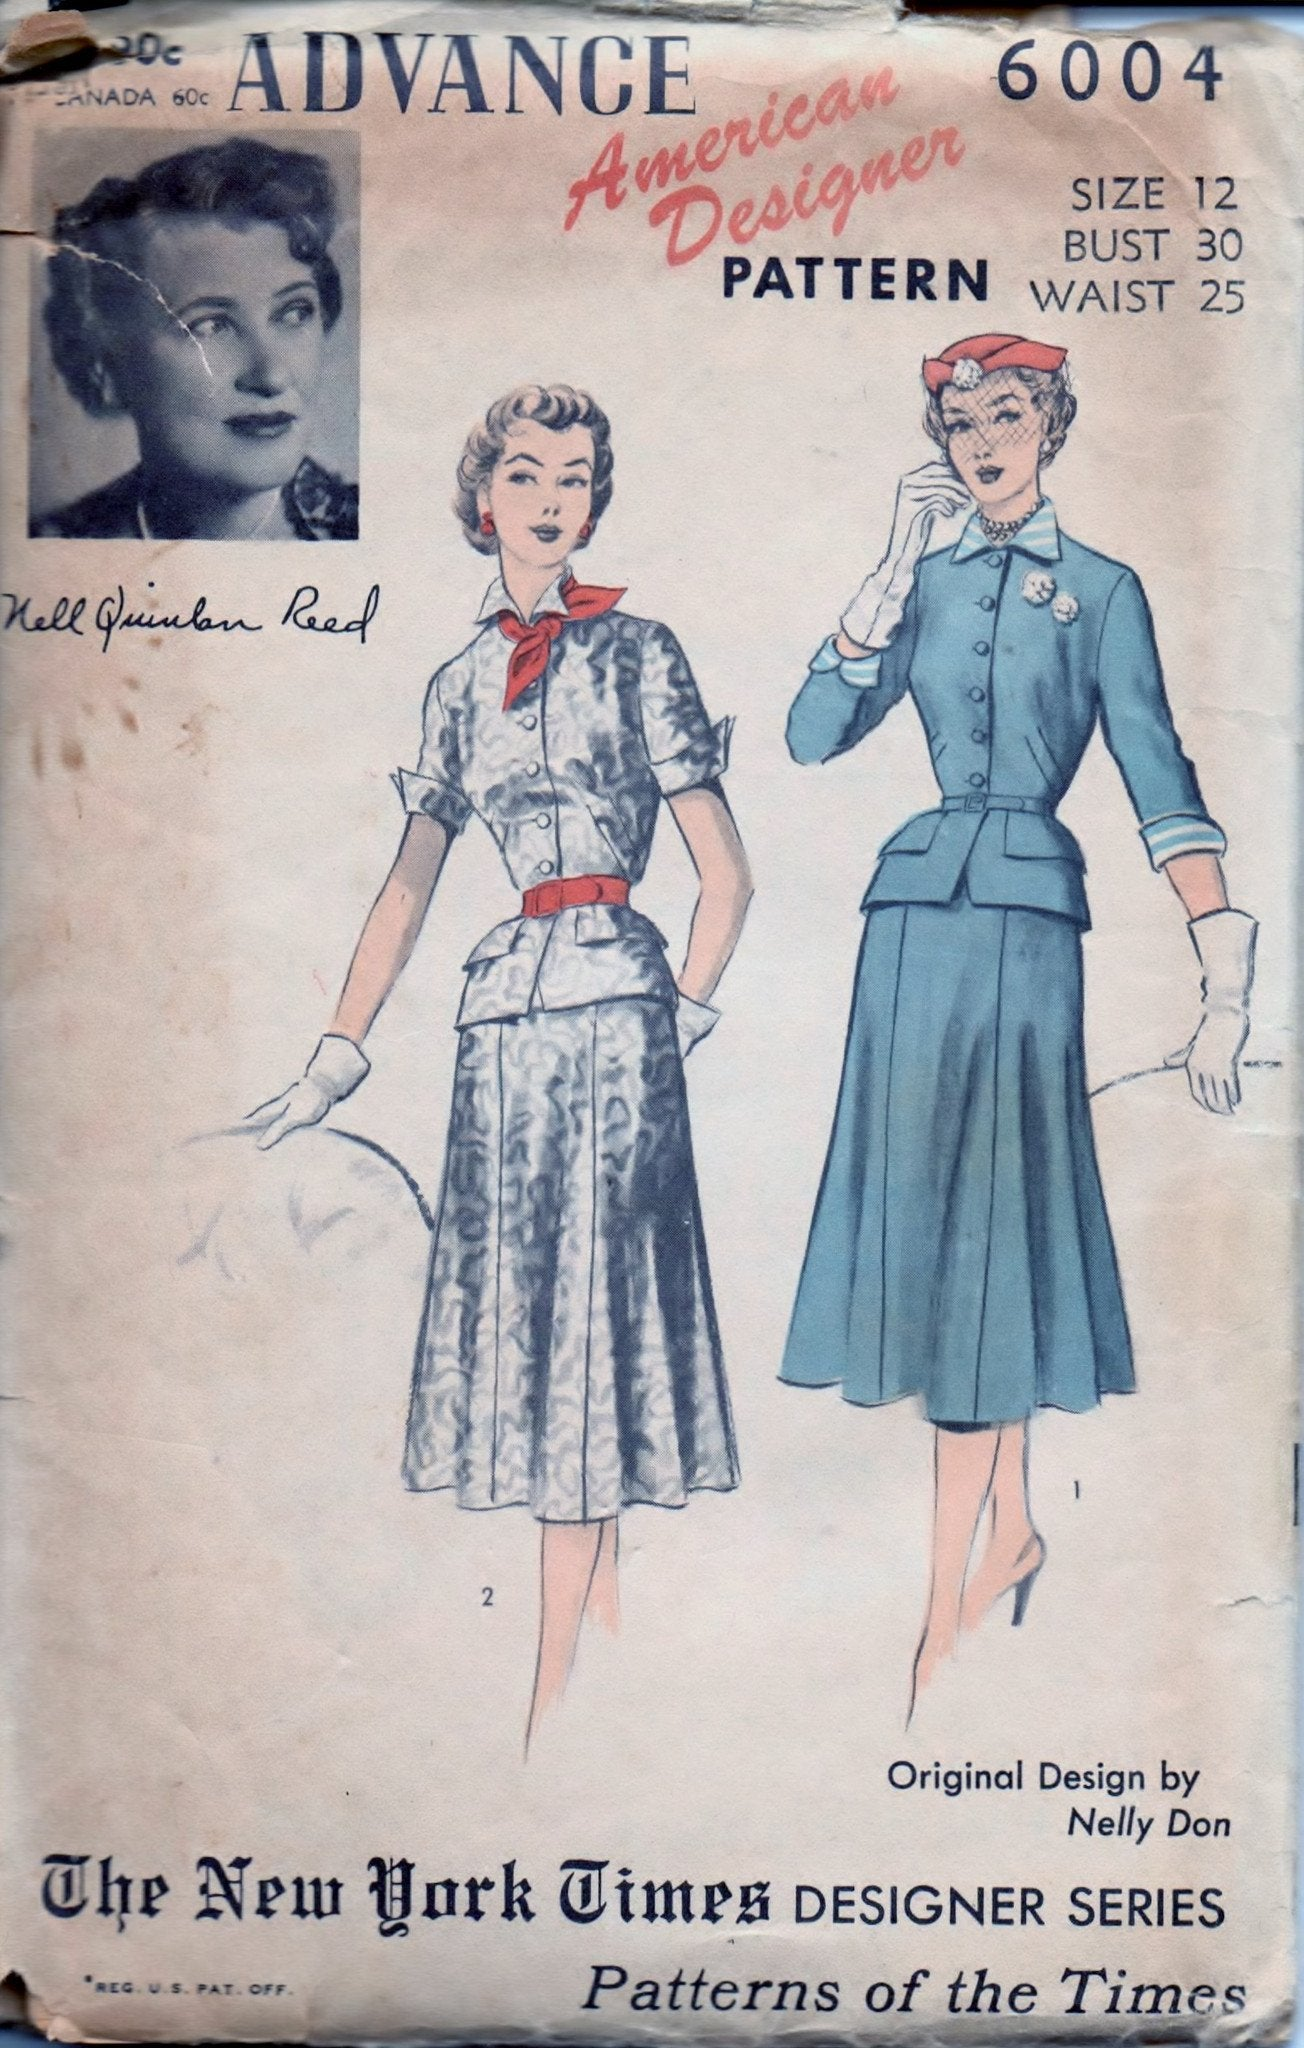 Advance 6004 Ladies Suit Dress Skirt Peplum Jacket  American Designer Vintage 50's Sewing Pattern - VintageStitching - Vintage Sewing Patterns